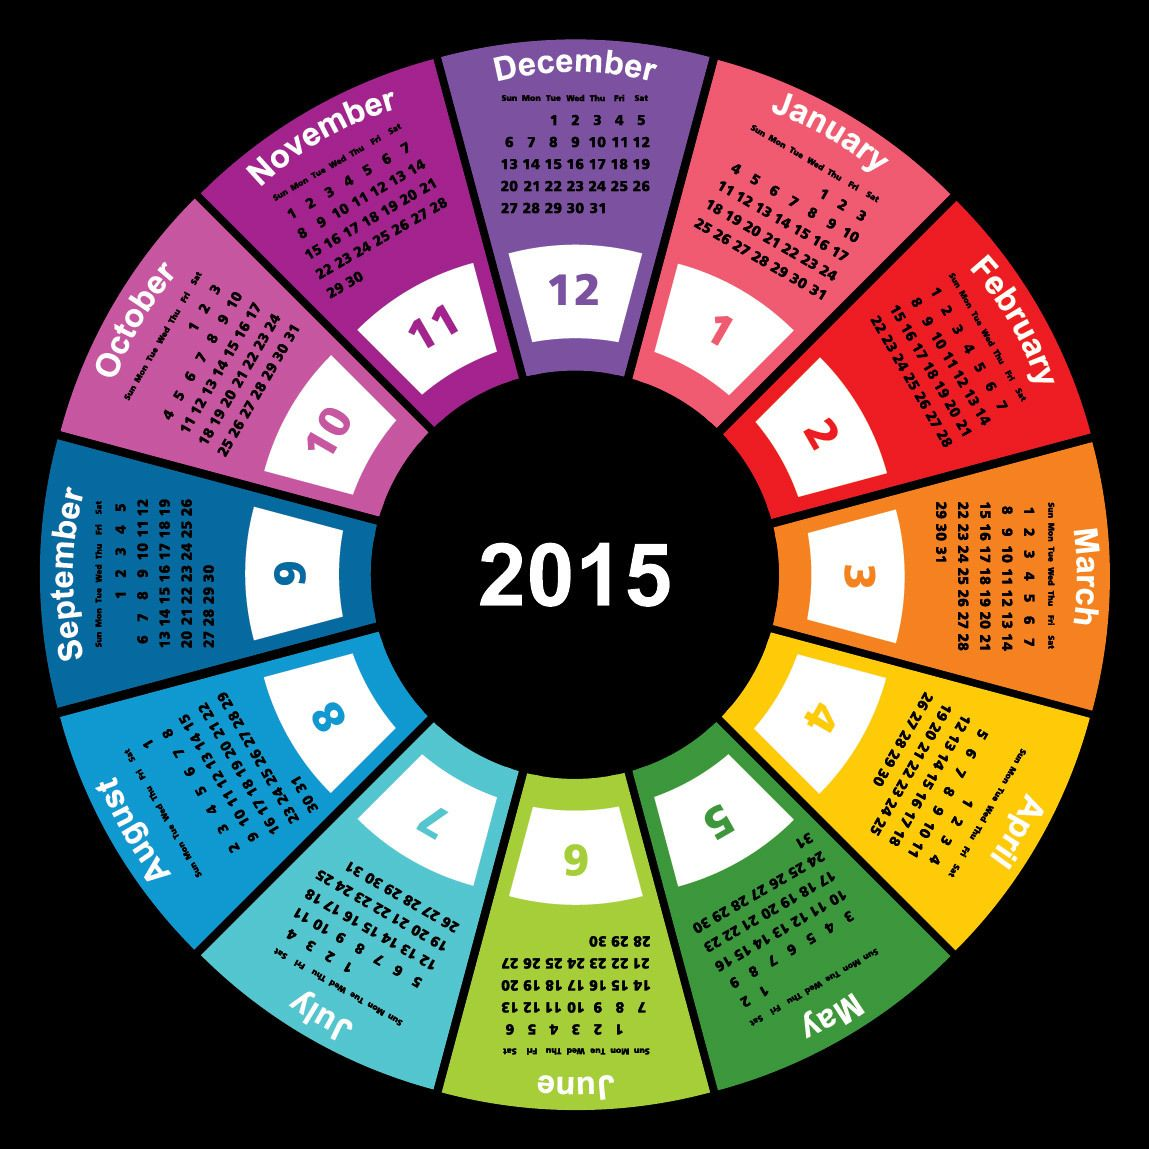 Calendar Design Ideas Vector : Colorful geometric calendario circular descargar vector